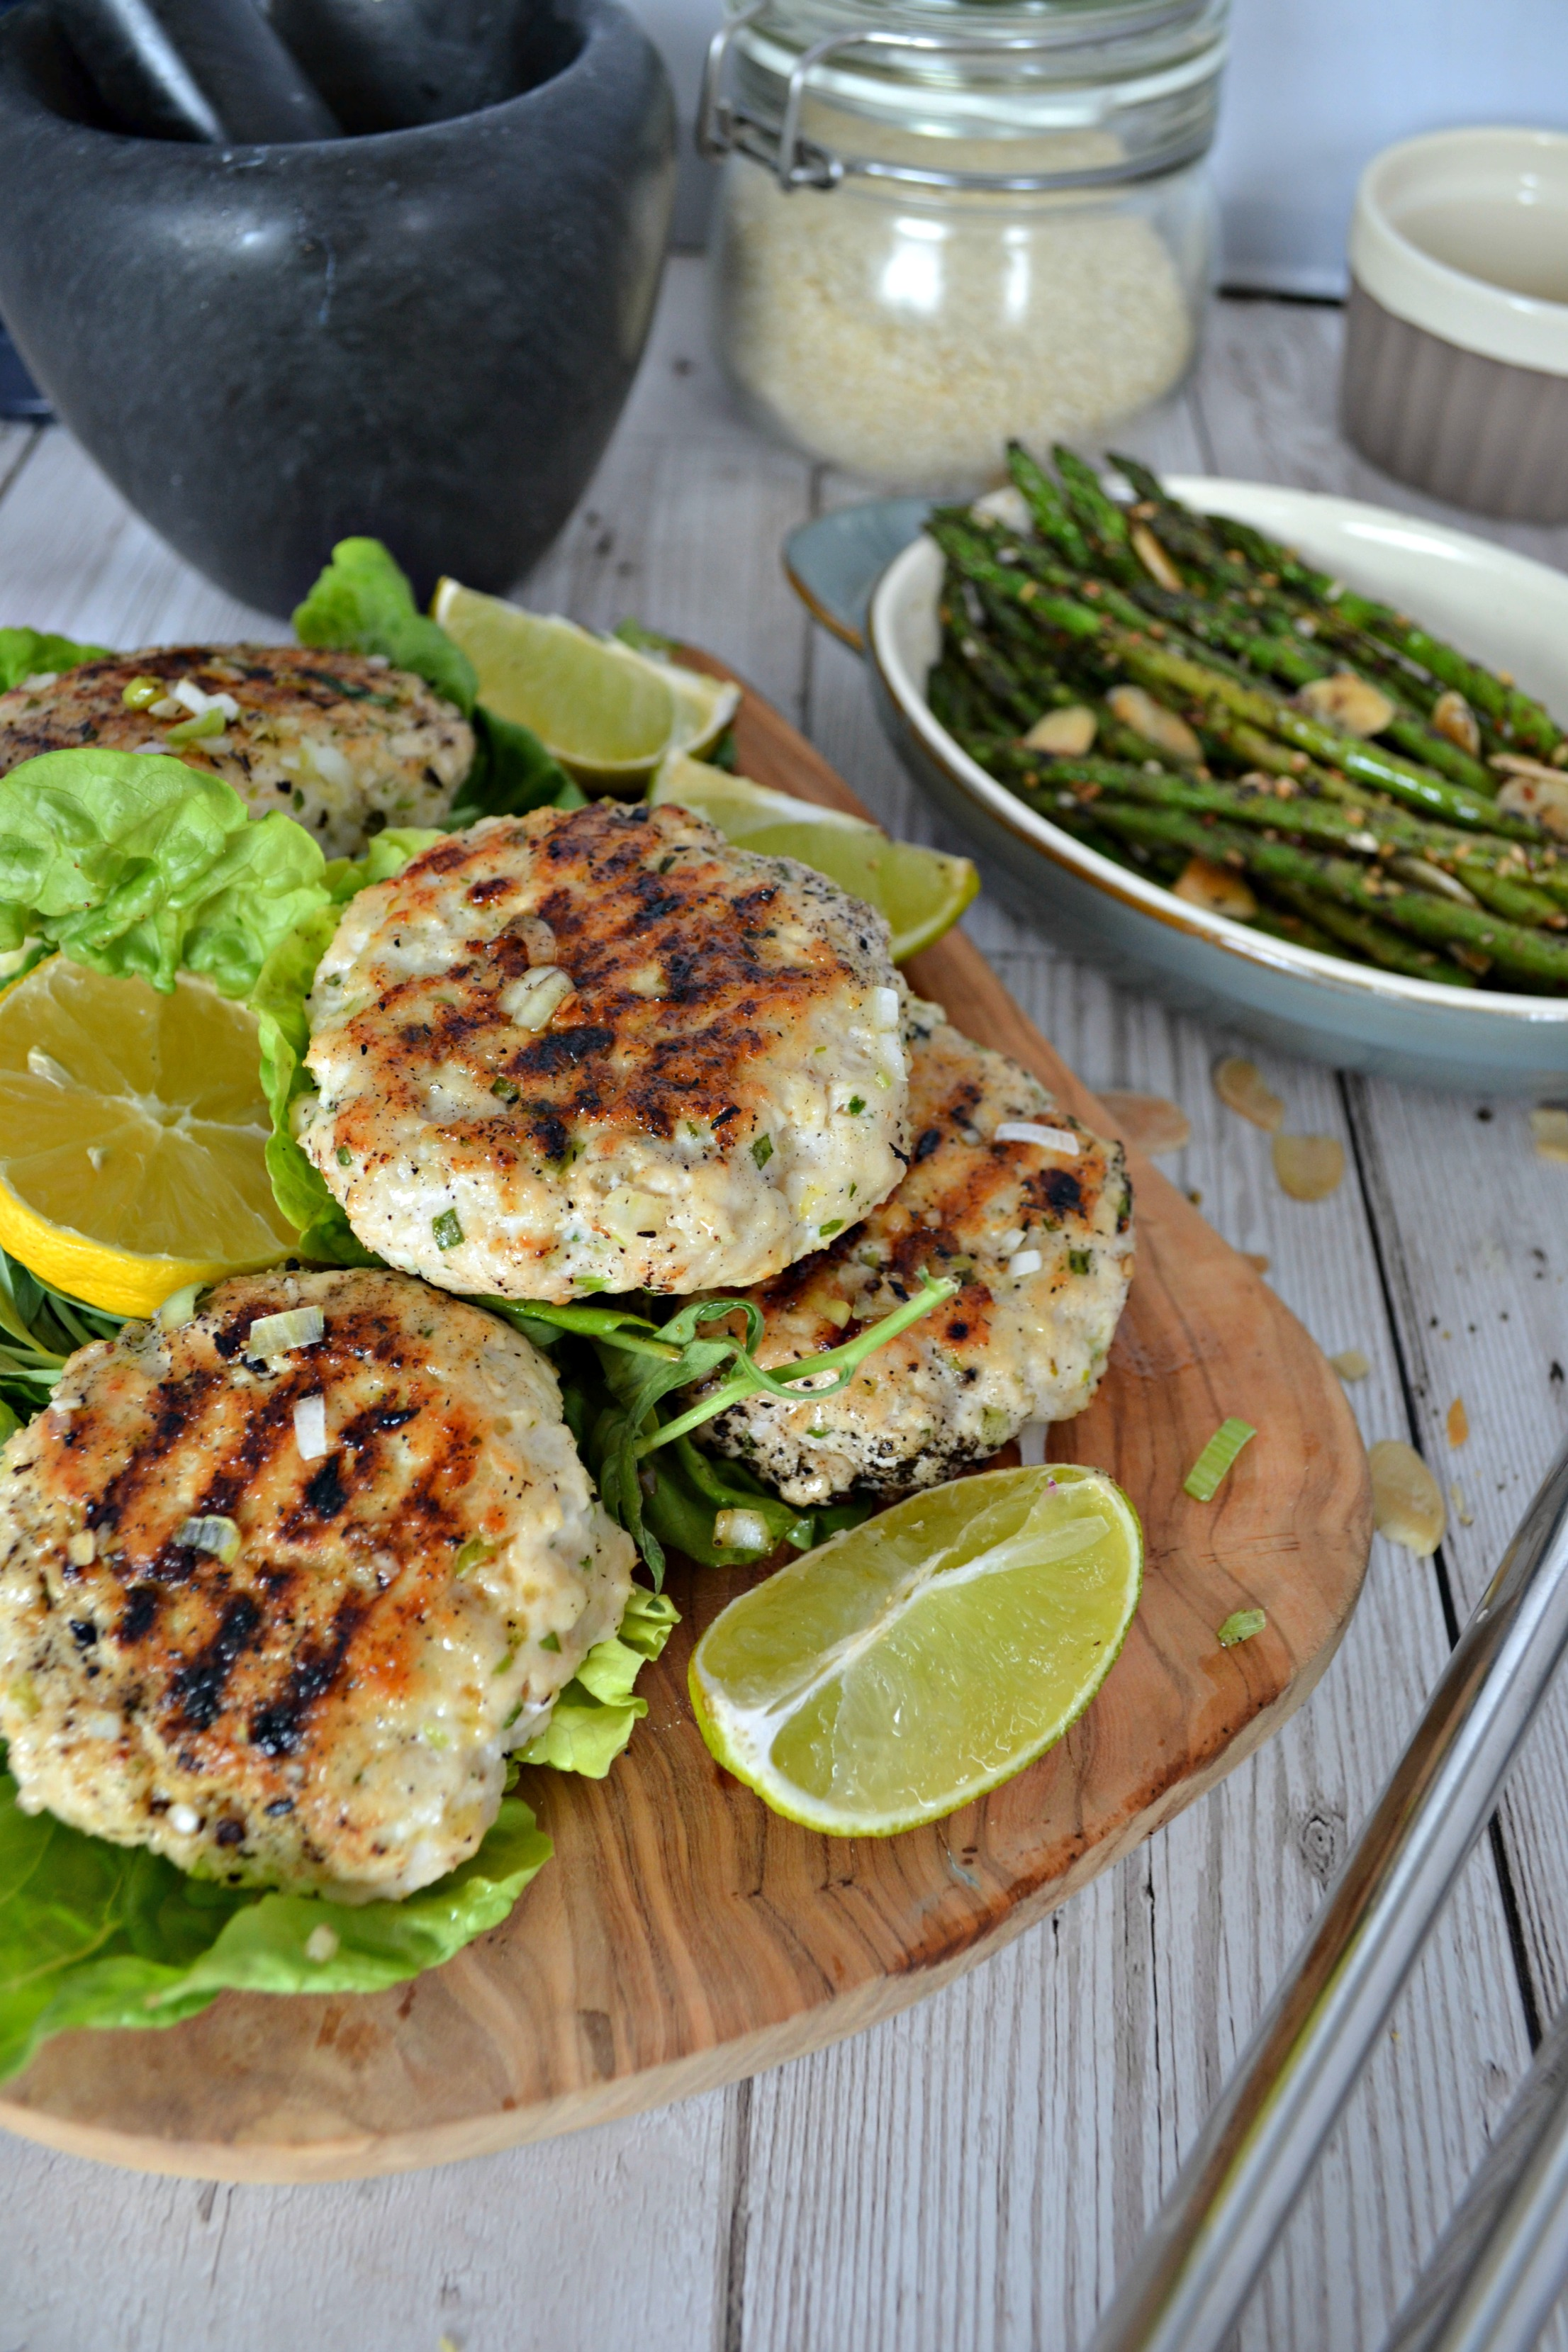 Chicken and tarragon burgers with sumac grilled asparagus | The Flourishing Pantry | healthy eating blog